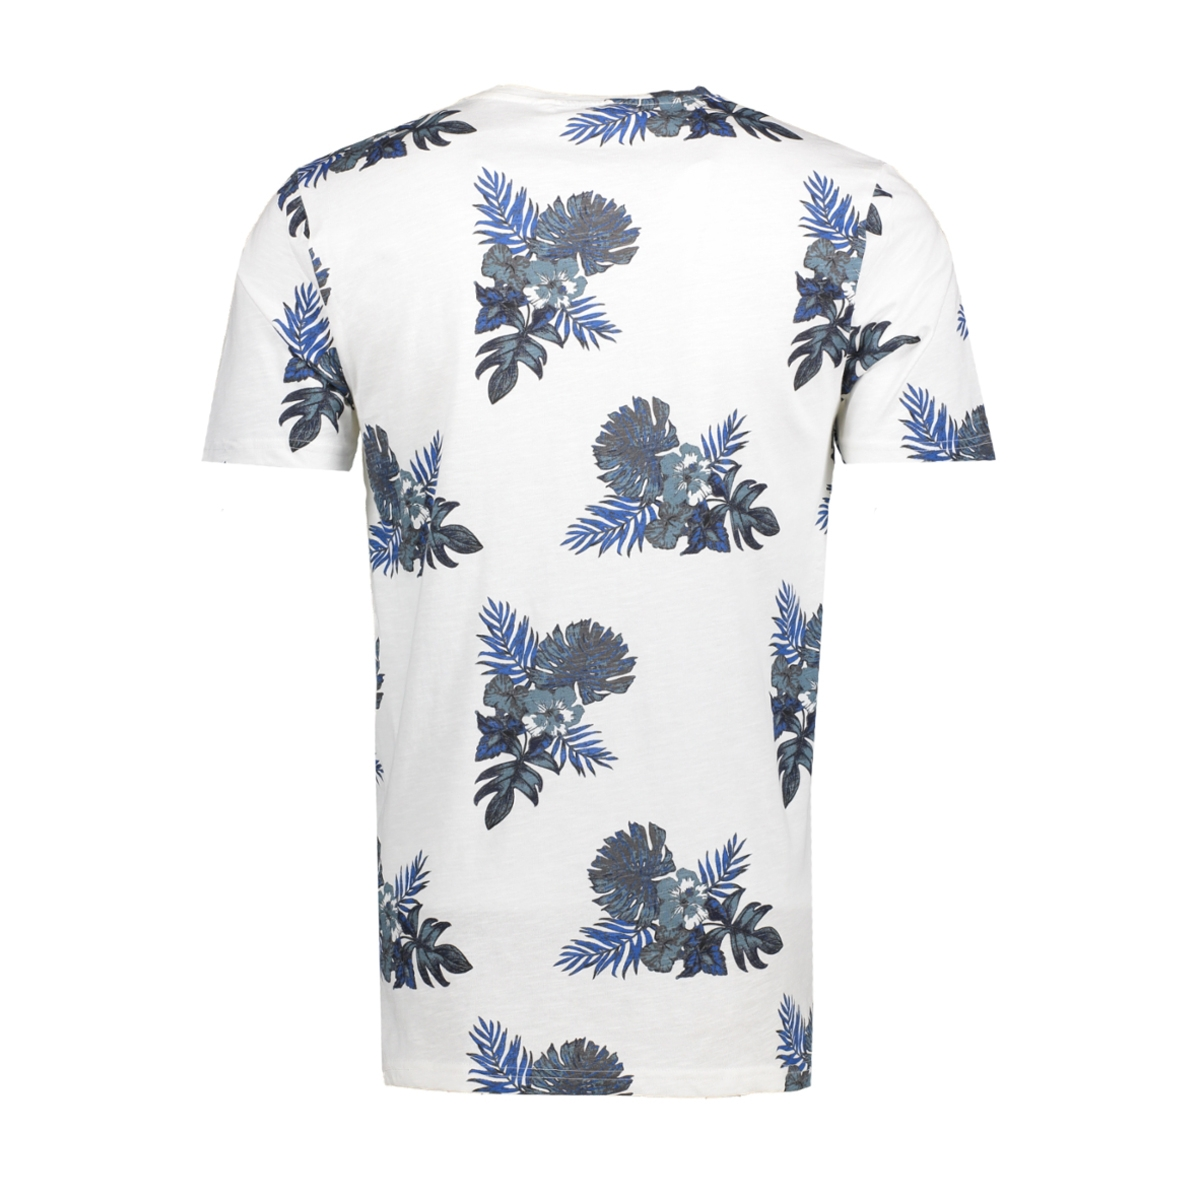 onsthat ss fitted fishtale tee 22005416 only & sons t-shirt bright white blue